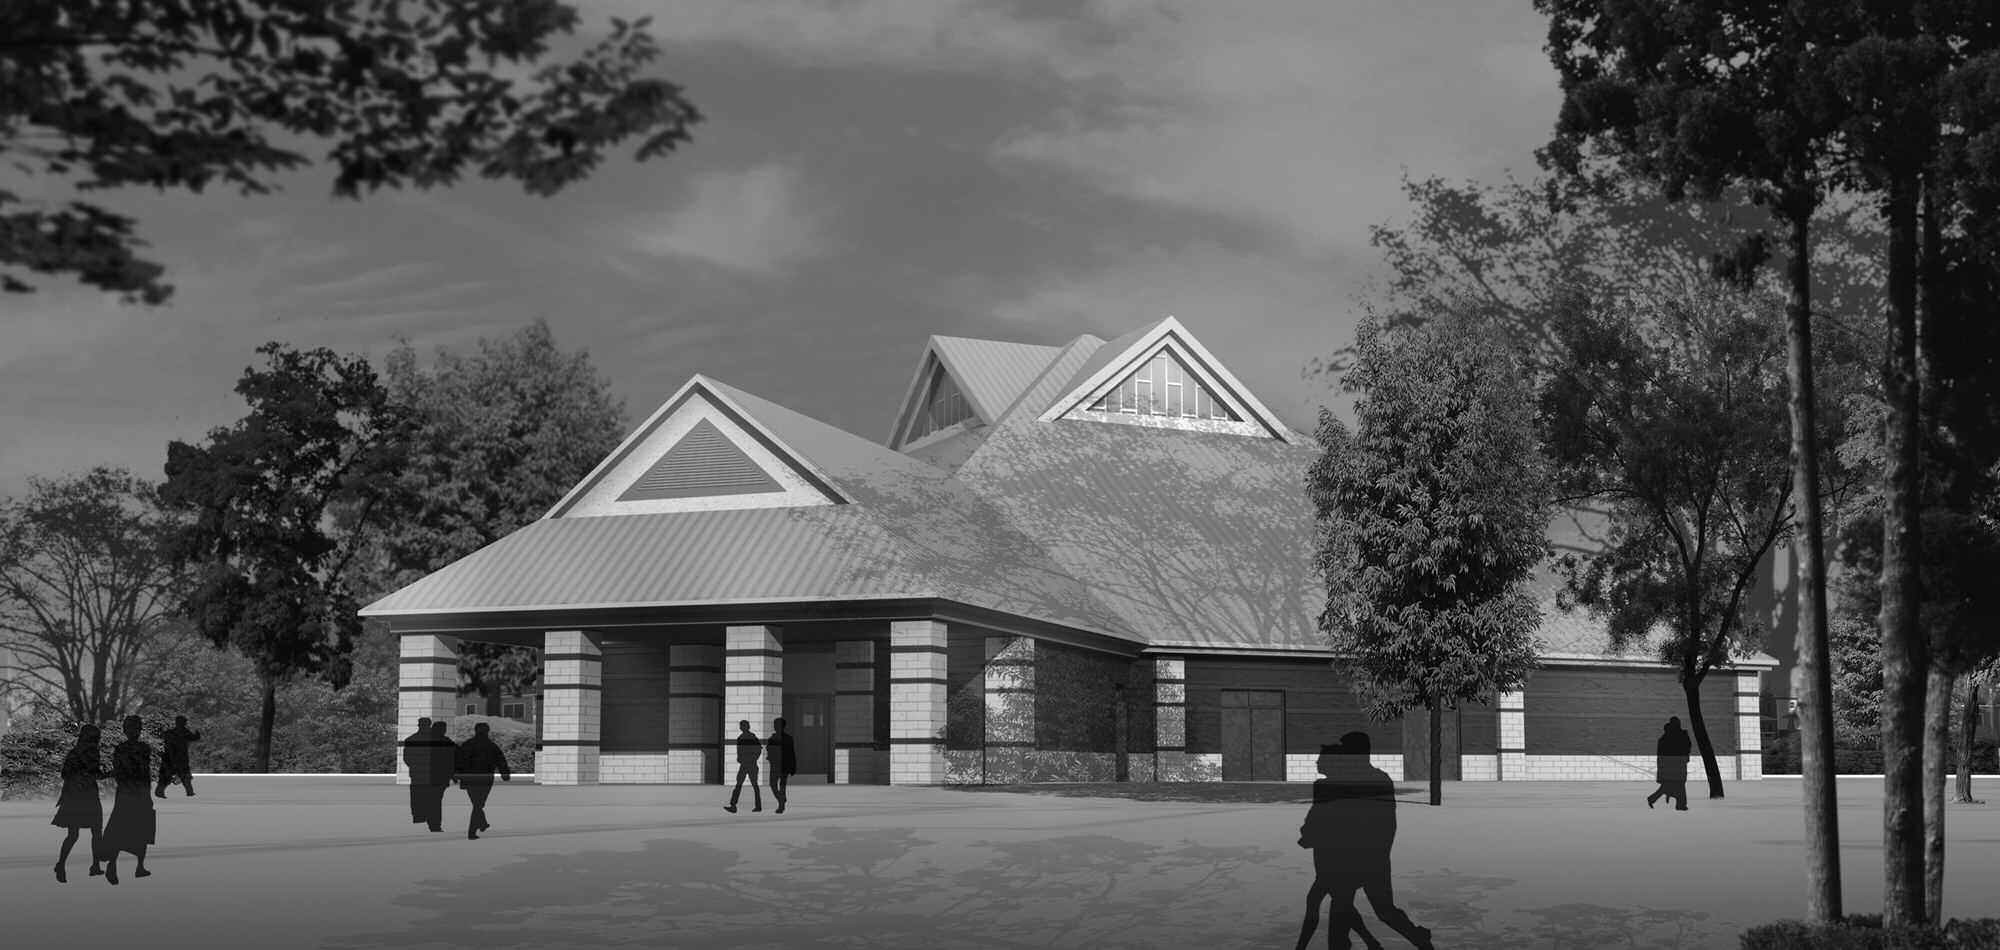 Rendering of the new Ressurection of Our Lord Catholic Church